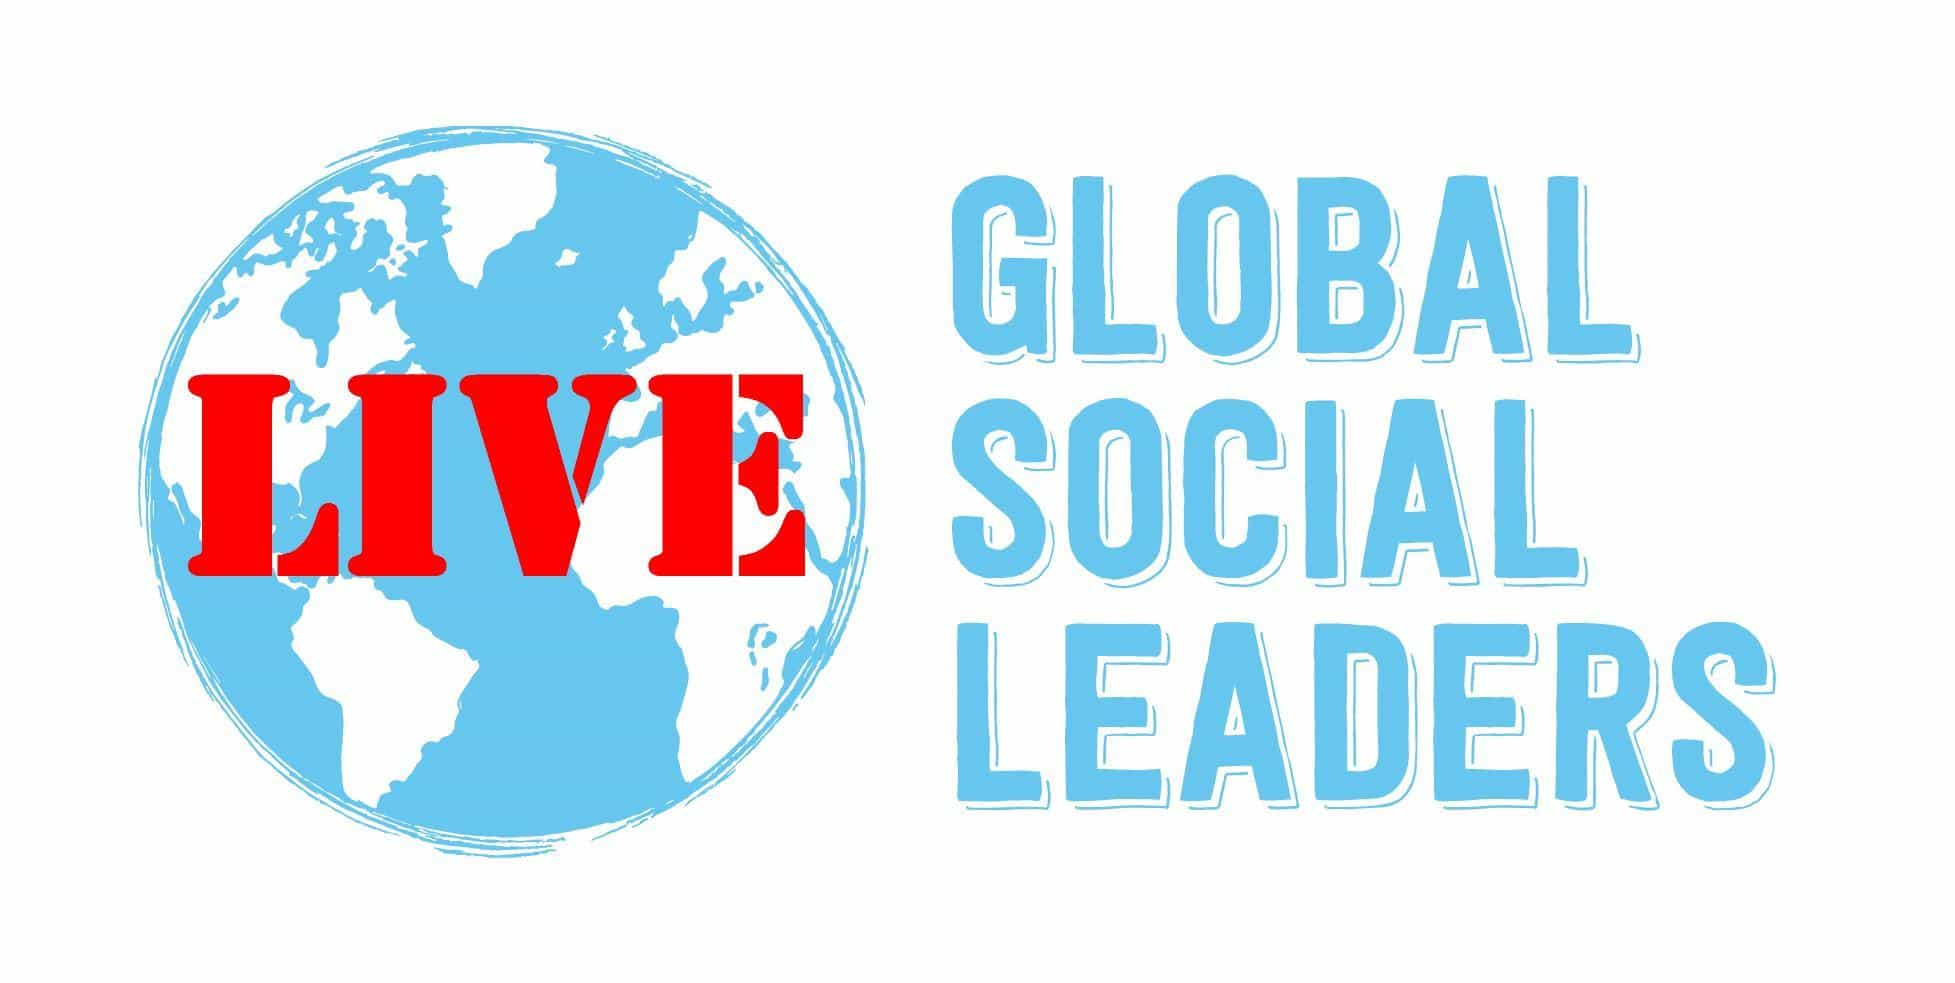 Day 2 – The Need for Social Change